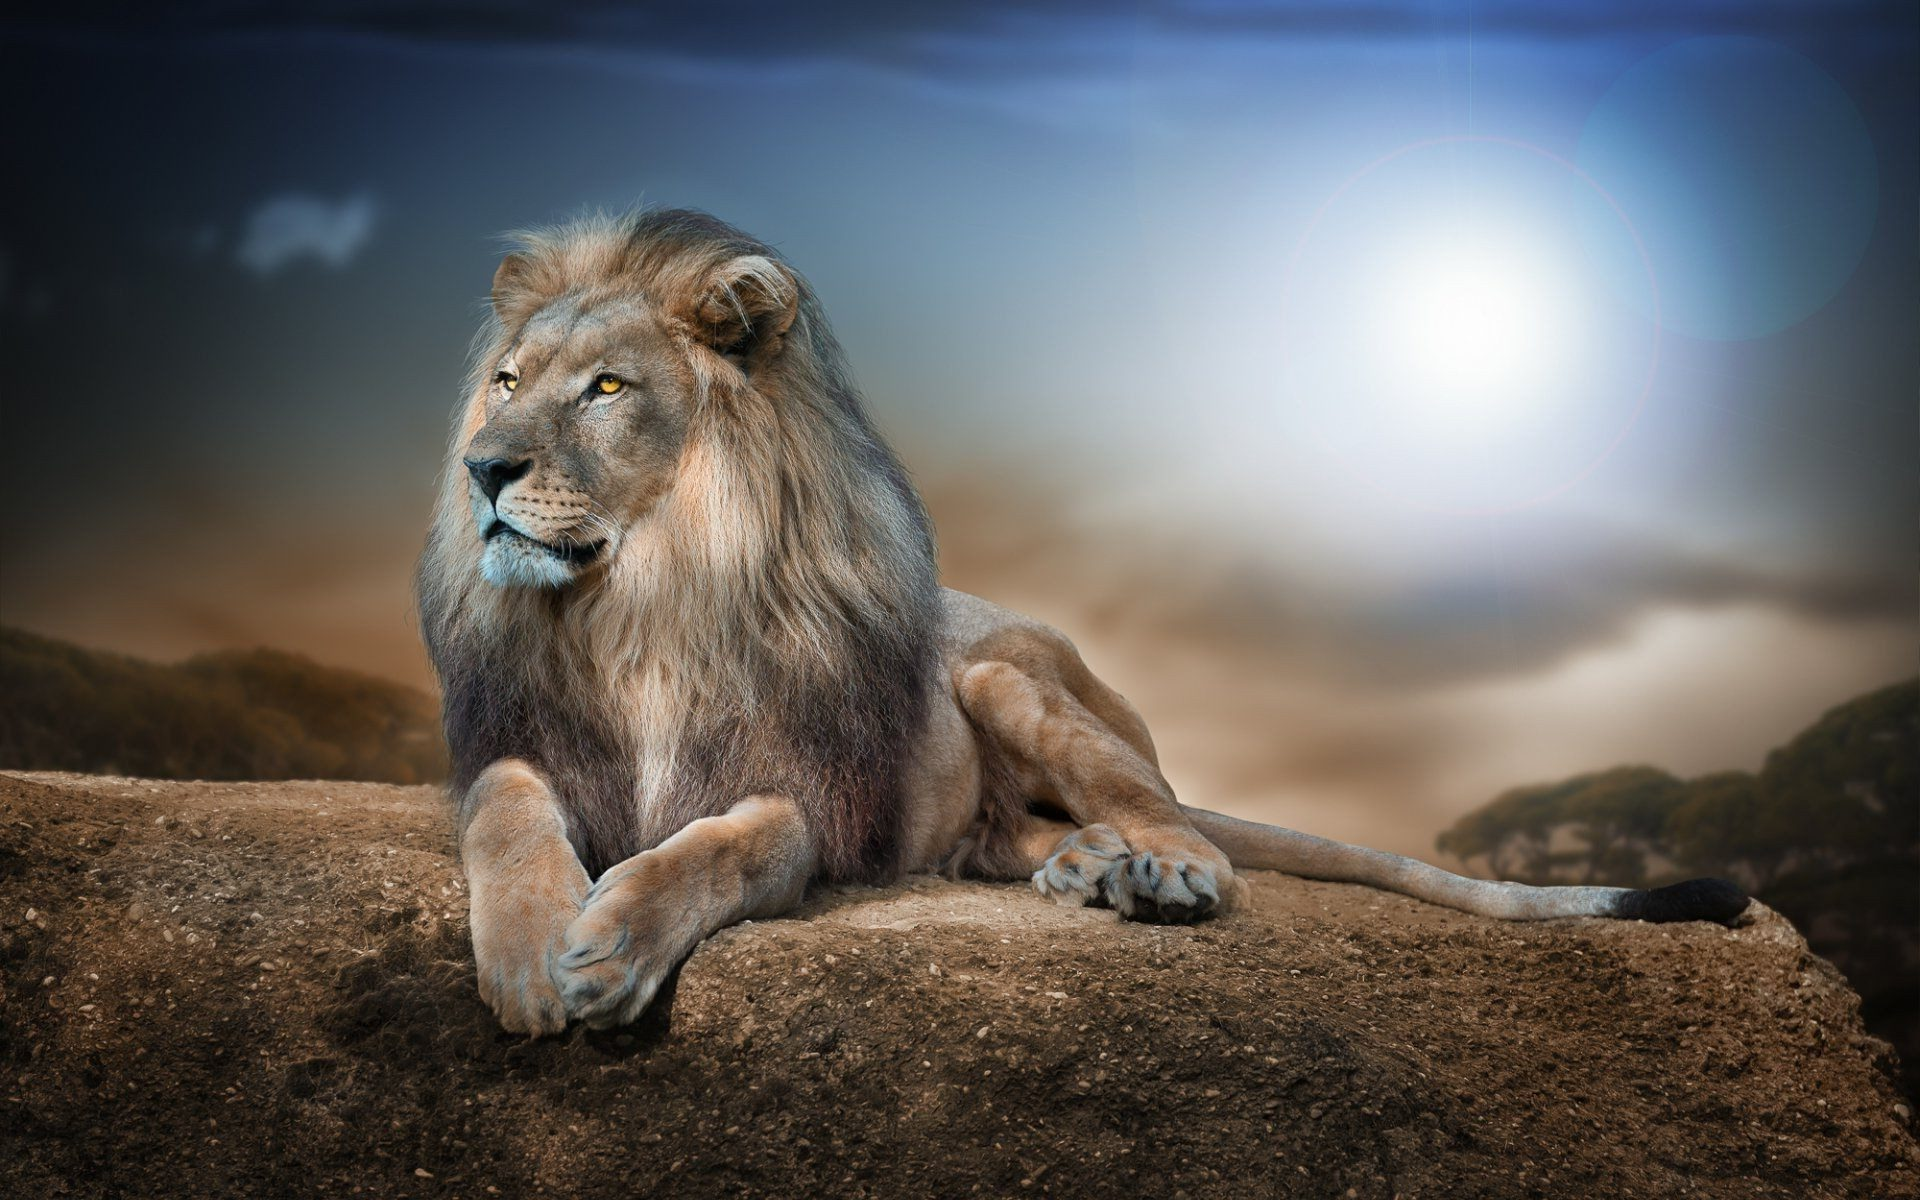 Lion Wallpaper 4k - Lion On A Rock , HD Wallpaper & Backgrounds